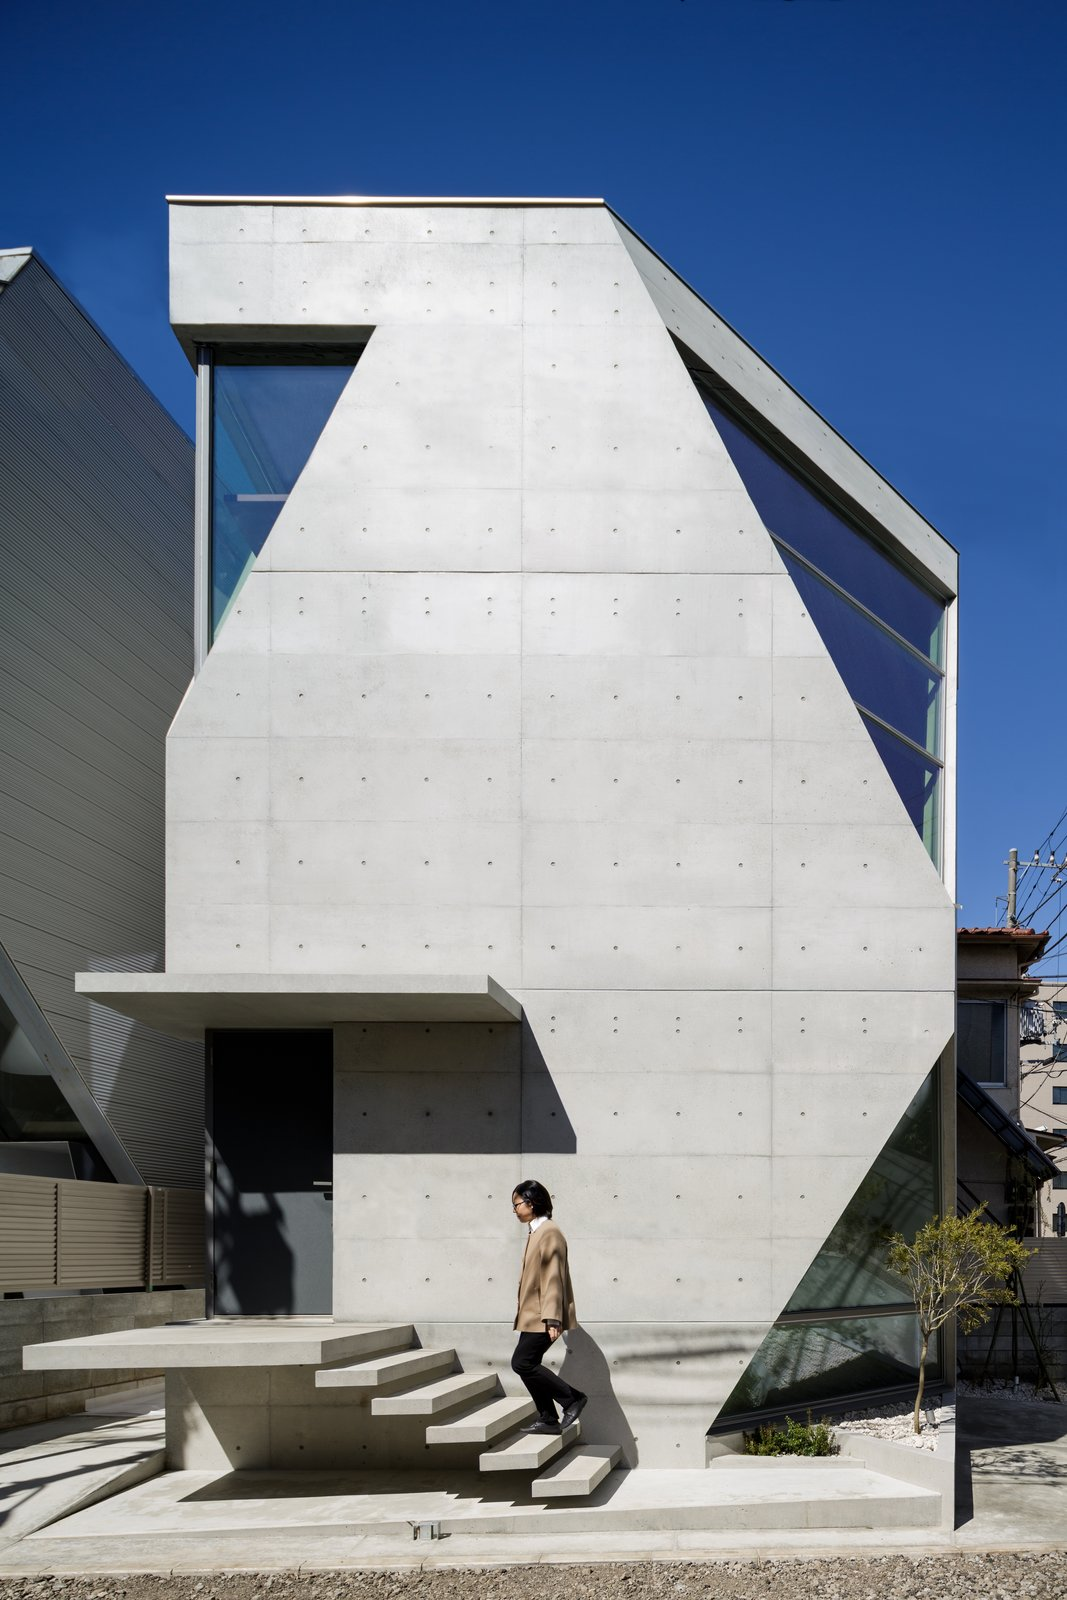 Exterior, House Building Type, Concrete Siding Material, and Glass Siding Material Built with specially-formulated concrete made of volcanic ash, this micro-house in Tokyo maximizes space through vertical construction.  When Tokyo-based architecture firm Atelier TEKUTO received a brief from their clients to build a distinctive, environmentally-conscious concrete home, they embarked on a two-and-a-half year journey of spacial and material exploration. Built in 2015, the result—the R Torso C project—recently won the Overall Excellence Award and first place in the low-rise buildings category at the 2017 American Concrete Institute Awards.  Best Photos from 25 Modern Homes That Kill it With Concrete